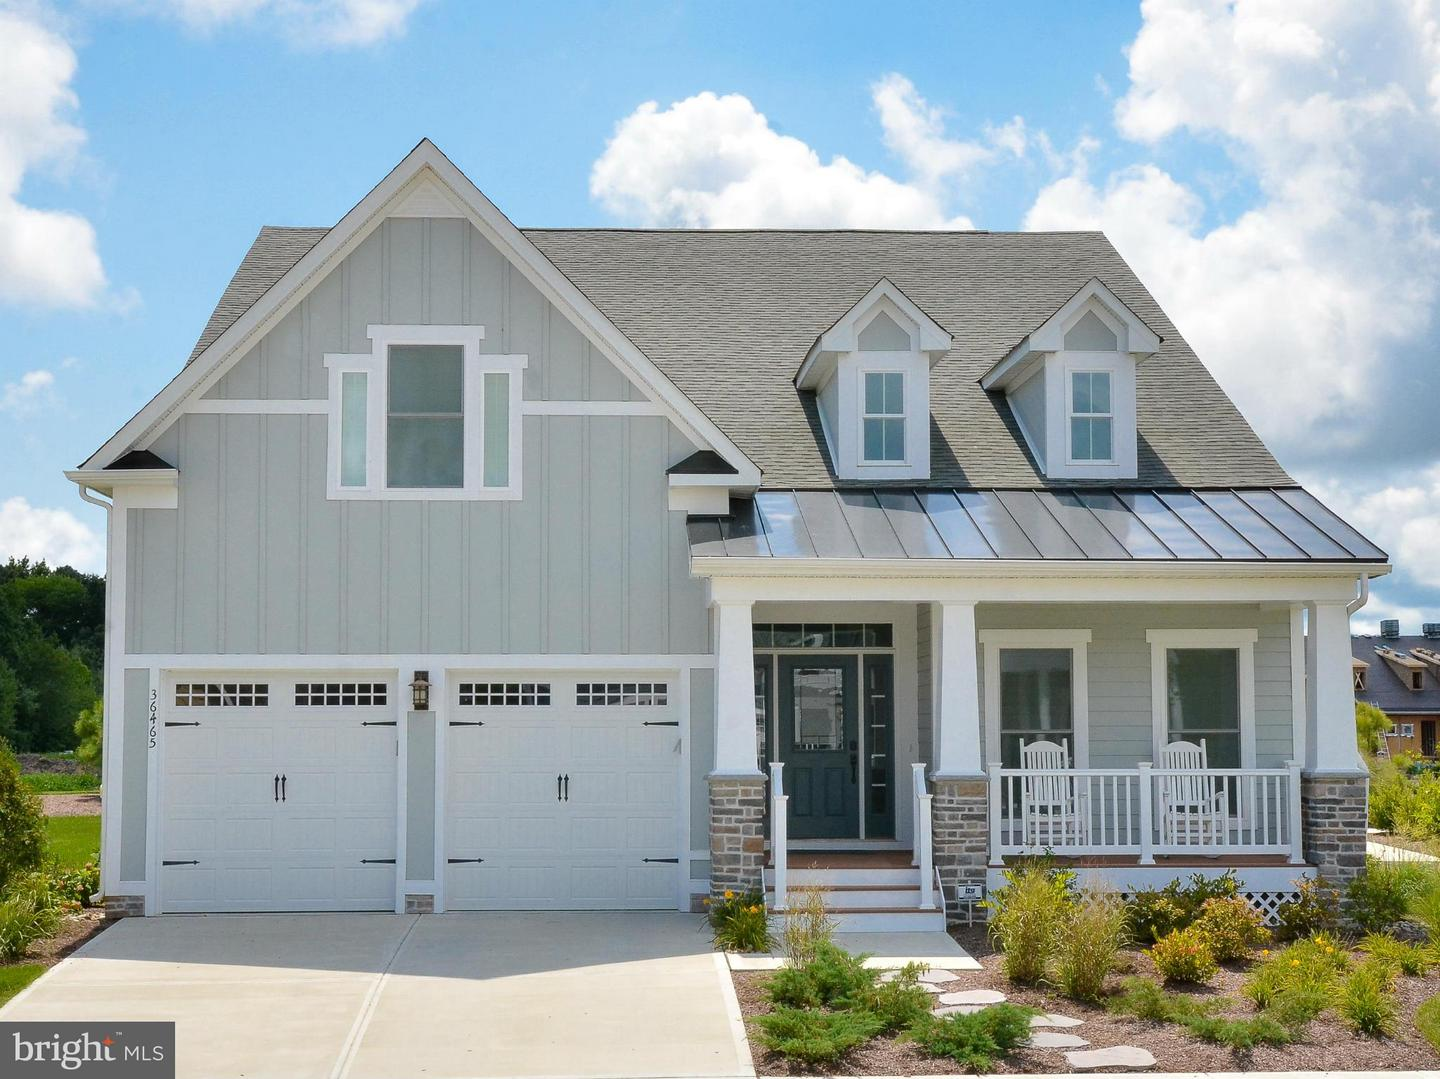 Single Family Home for Sale at 1471 Catbriar Way 1471 Catbriar Way Odenton, Maryland 21113 United States